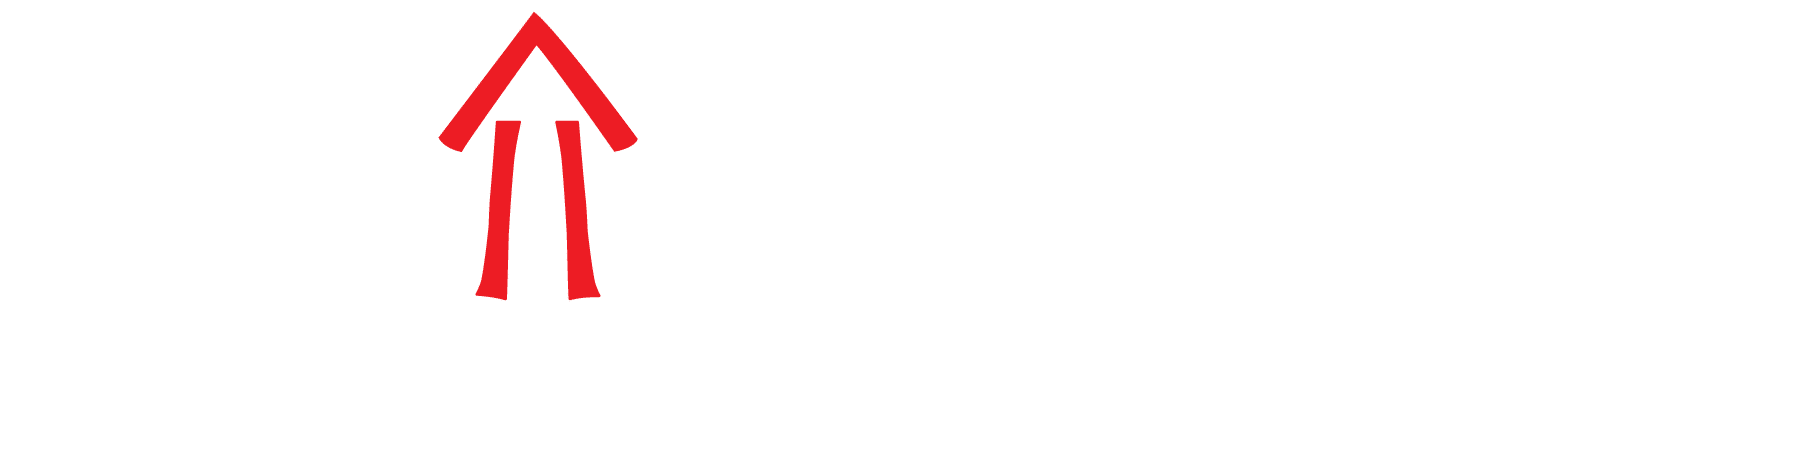 Excellent-Roofing-Retina-white